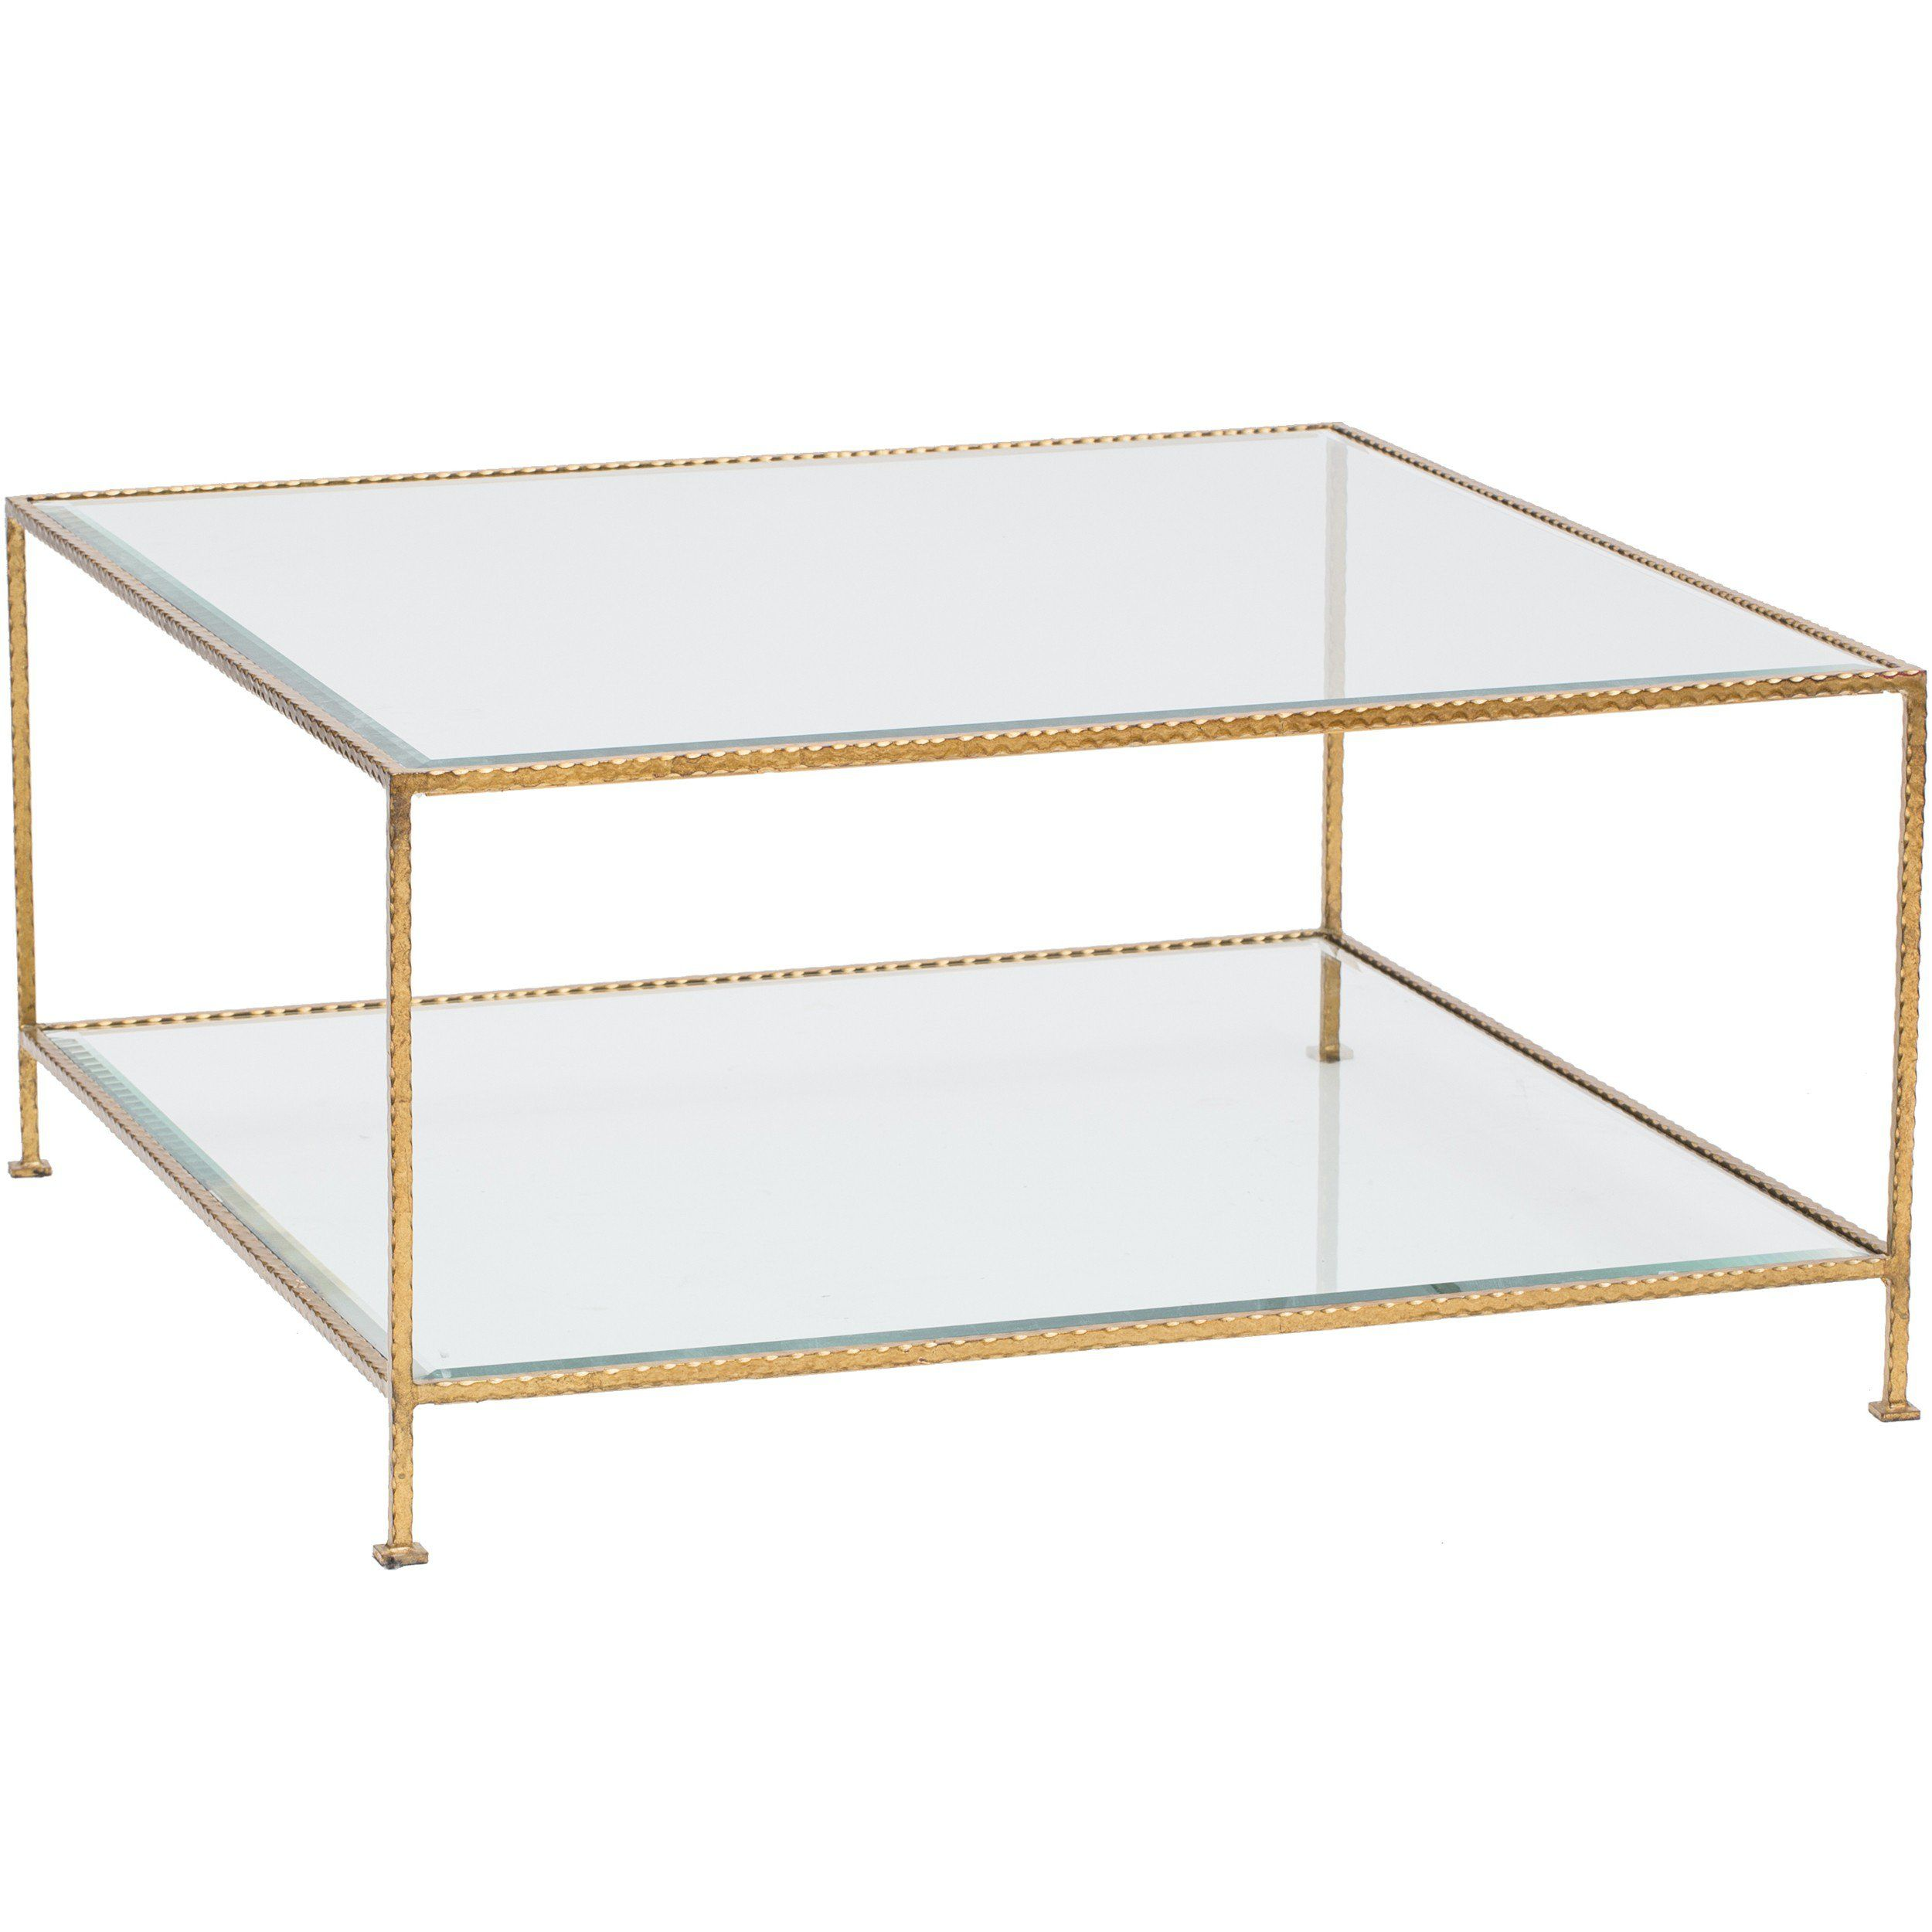 Worlds Away Quadro 2 Tier Square Coffee Table Gold Coffee Table Square Coffee Table Gold Coffee Table [ 2500 x 2500 Pixel ]